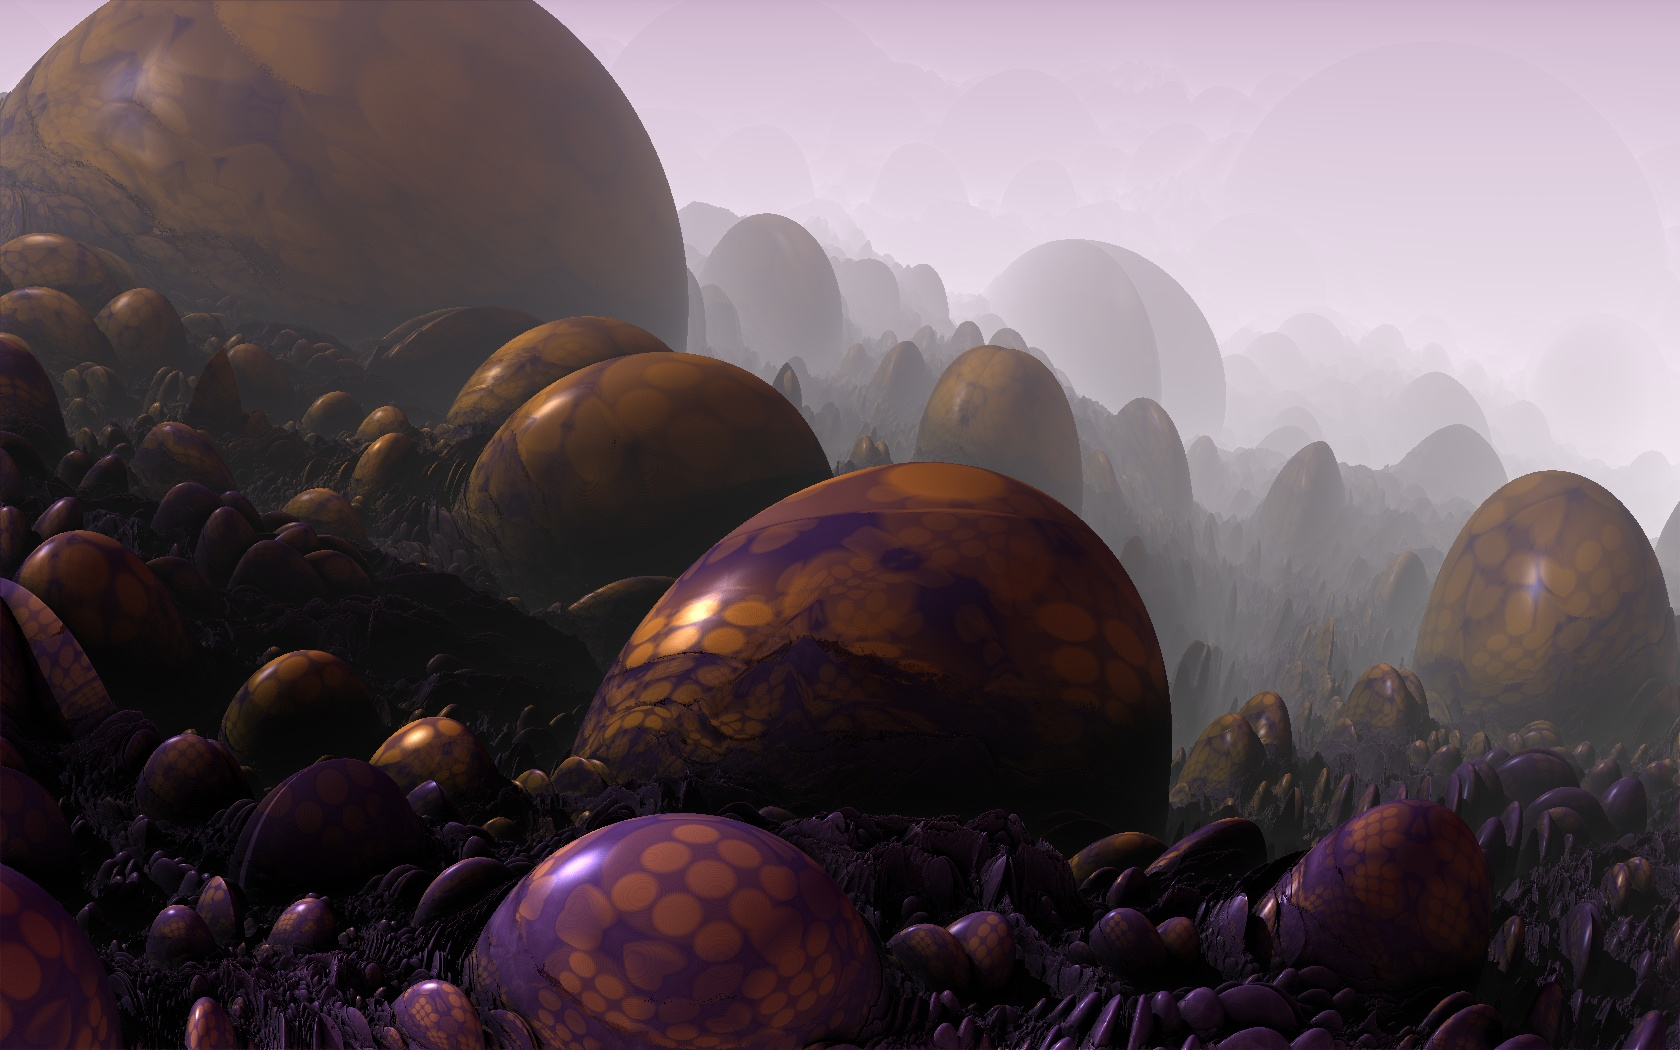 dragon_eggs_by_darkmask-d5bmqwr.jpg